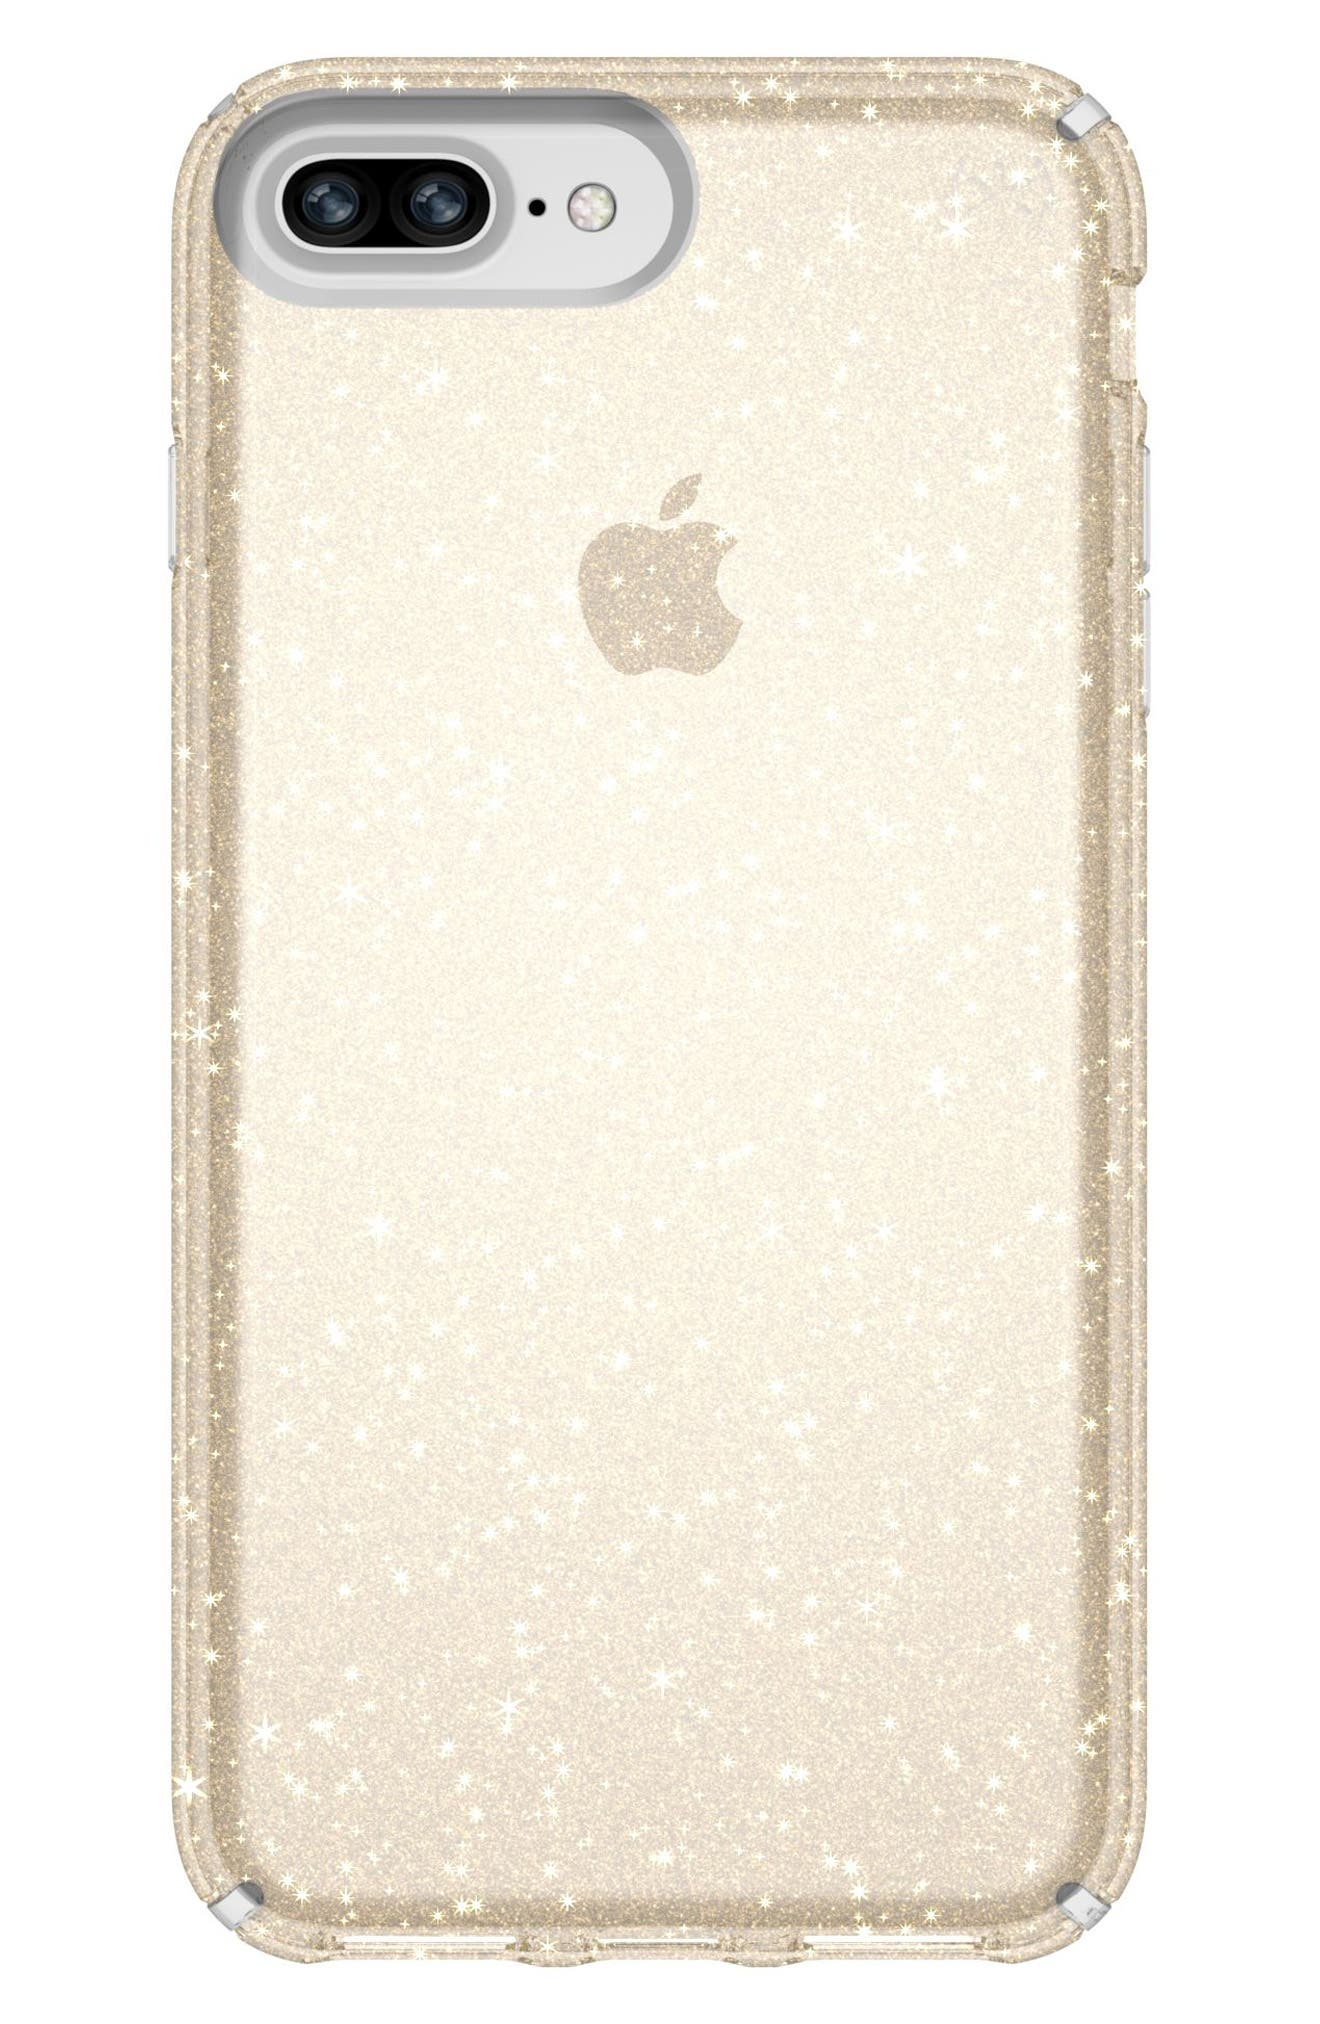 iPhone 6/6s/7/8 Plus Case,                         Main,                         color, Clear With Gold Glitter/ Clear